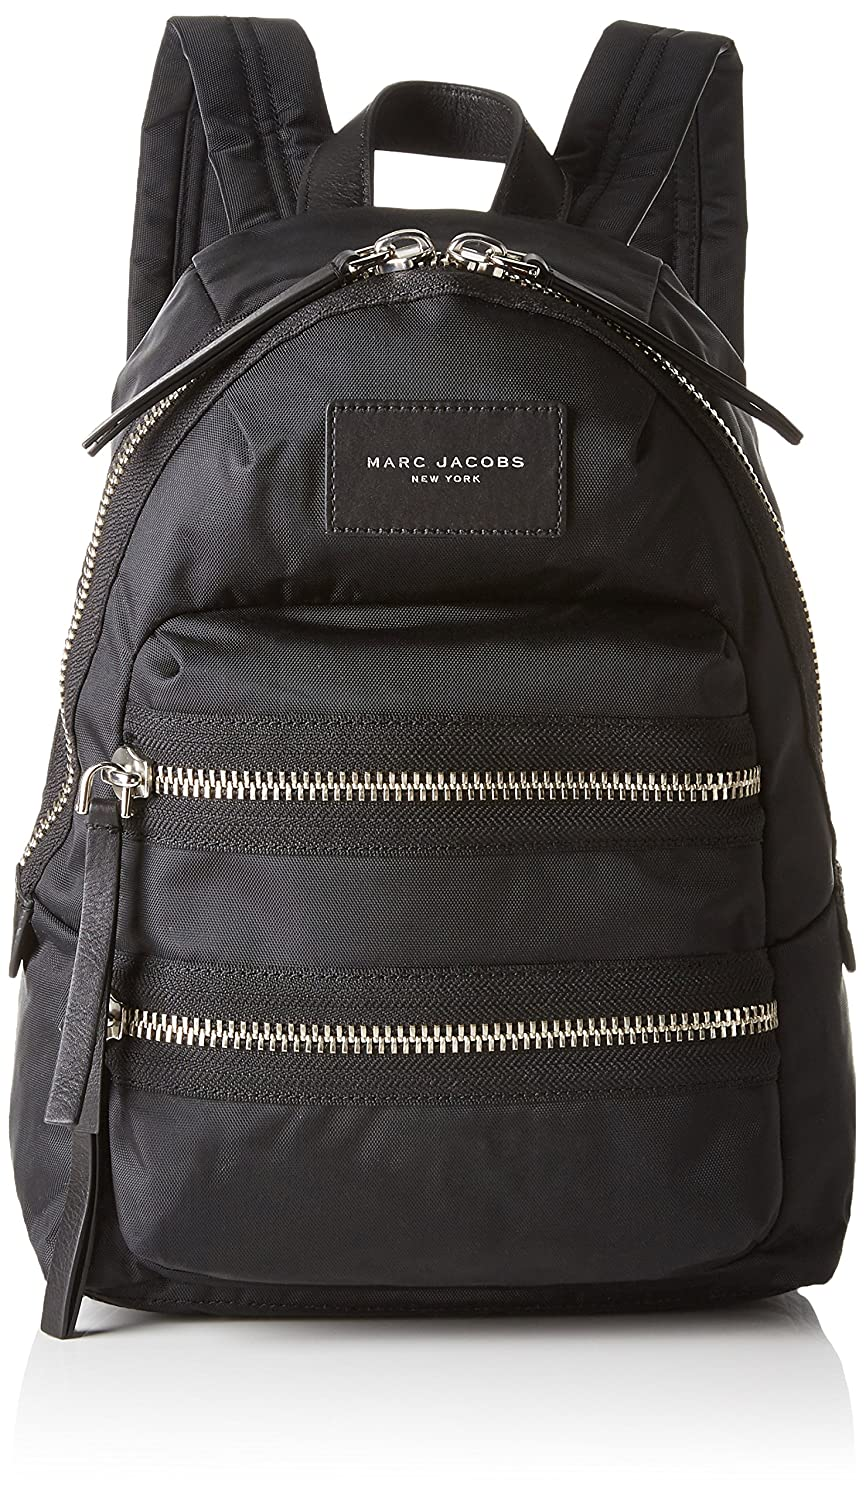 マークジェイコブス リュック Nylon Biker Mini Backpack(Black) MARC BY MARC JACOBS【並行輸入品】 B0185U2GJY